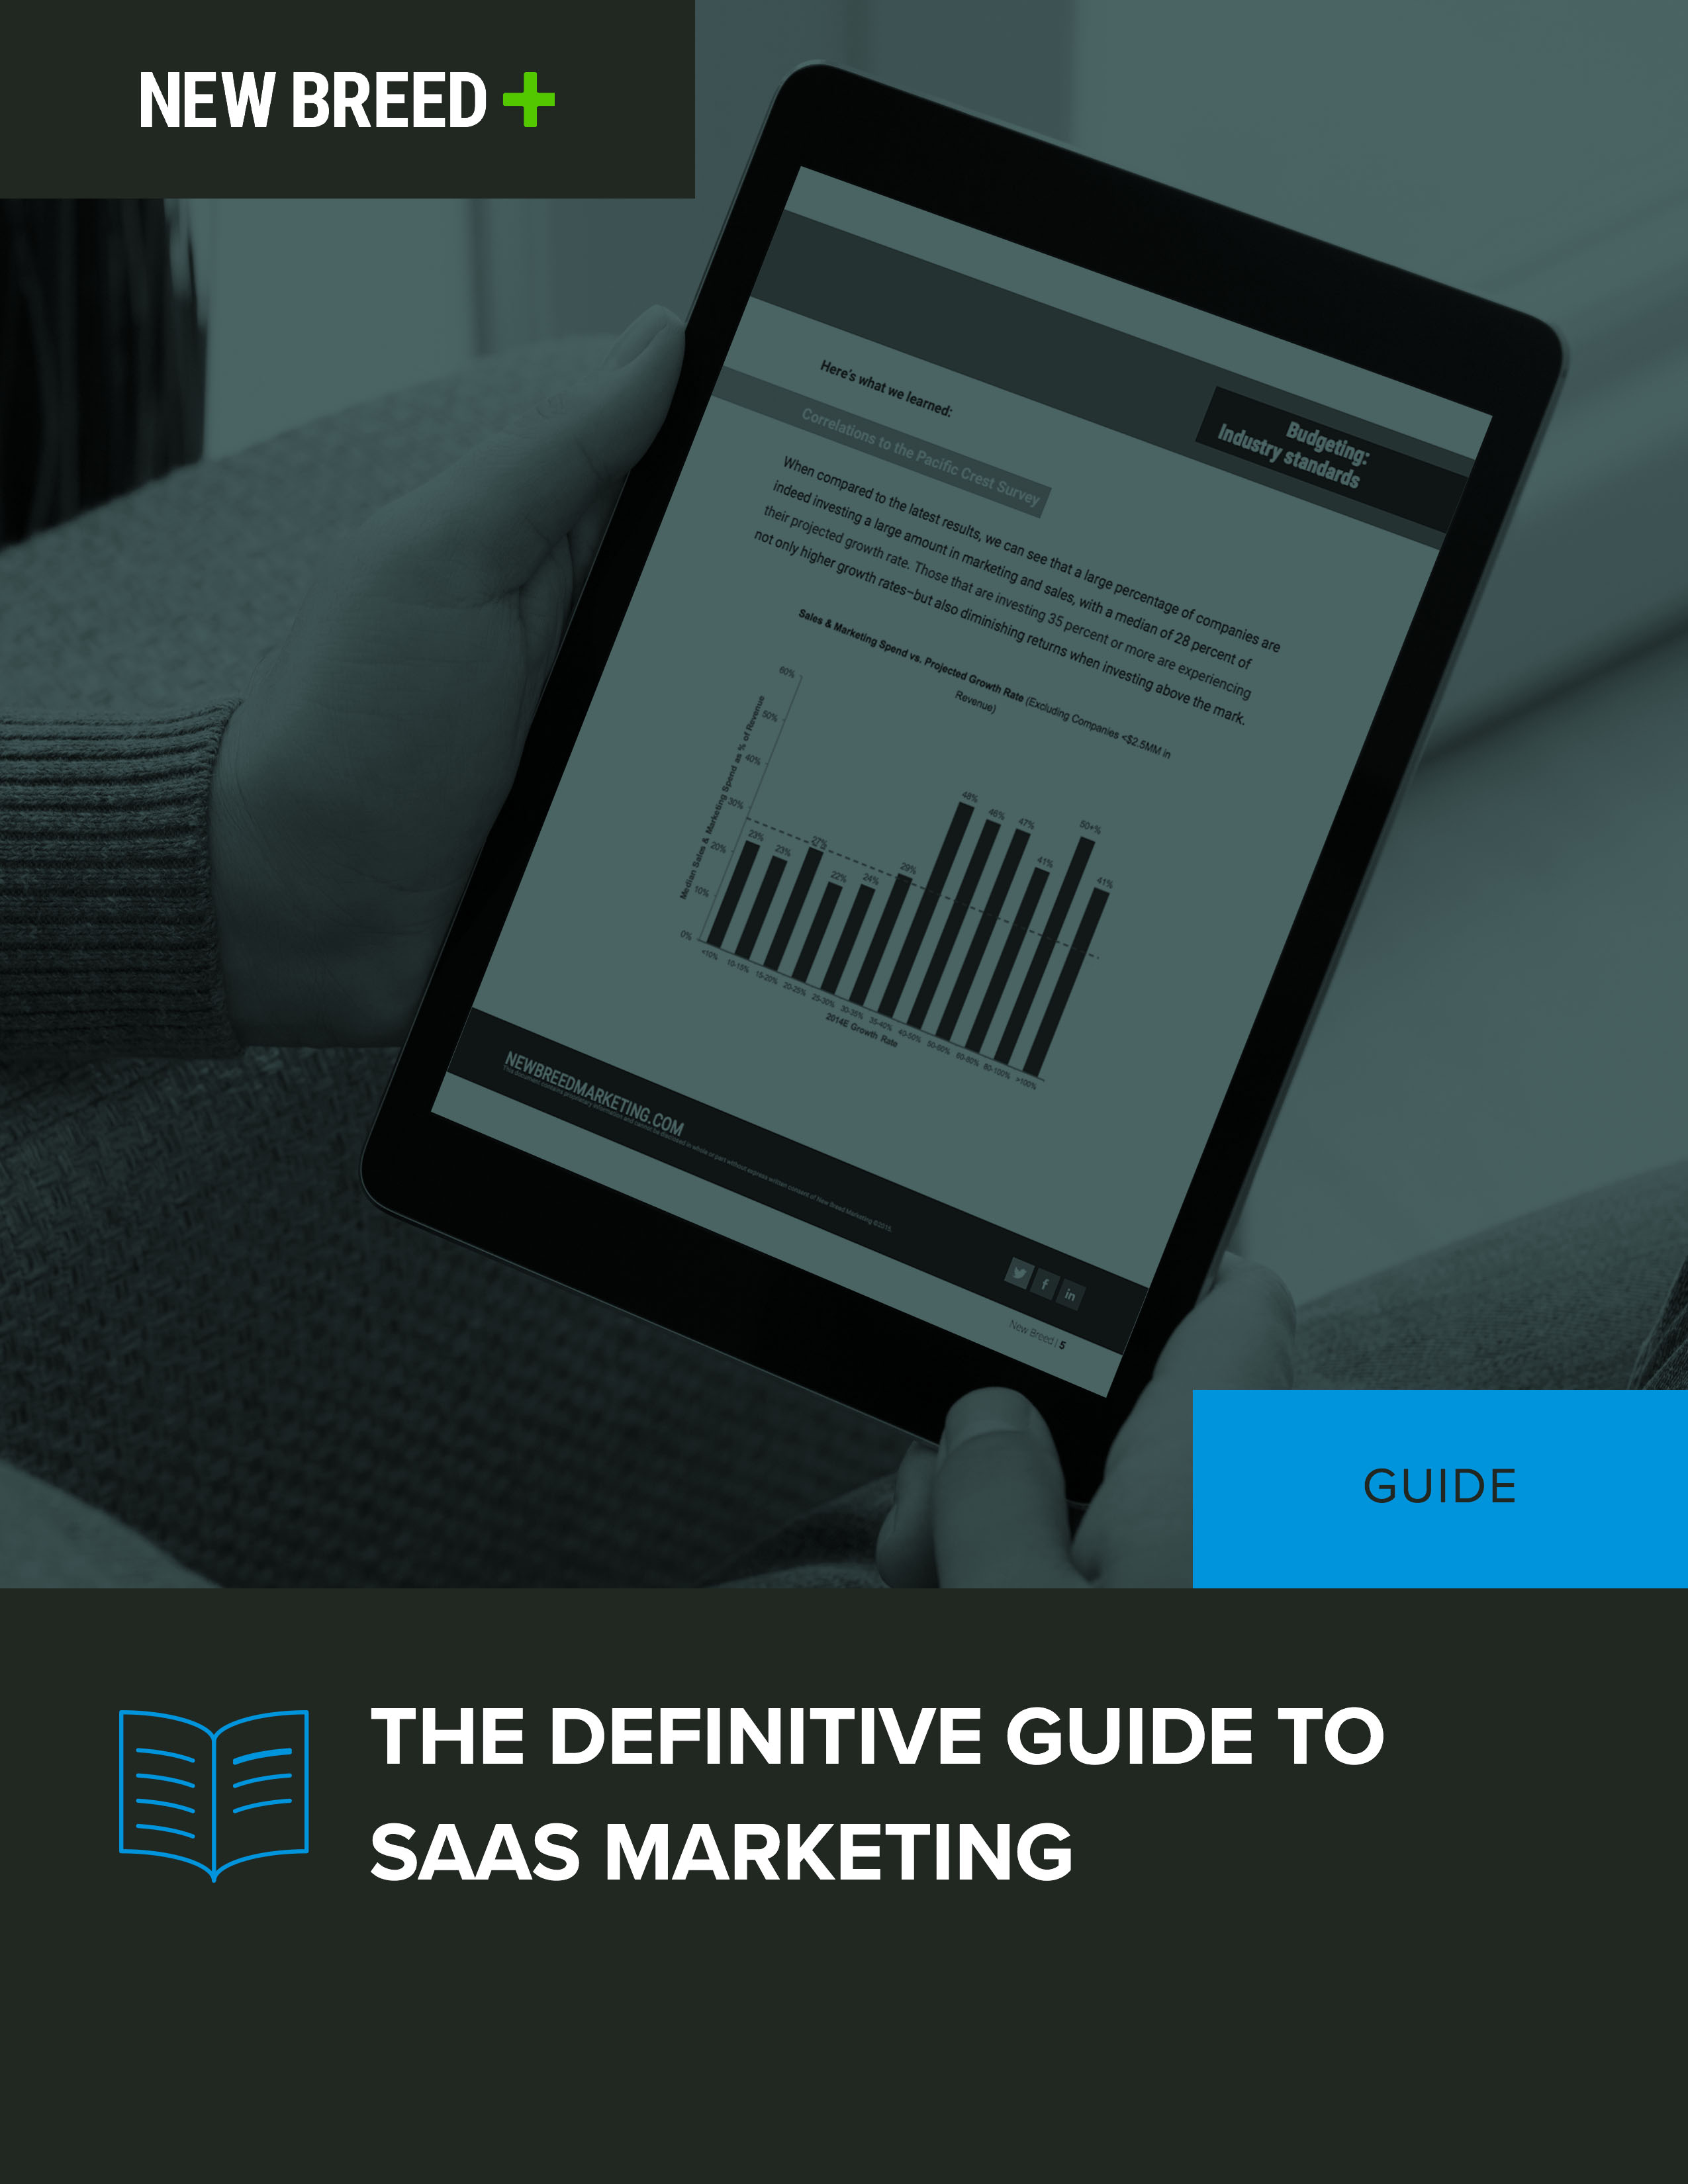 Definitive Guide to SaaS Marketing